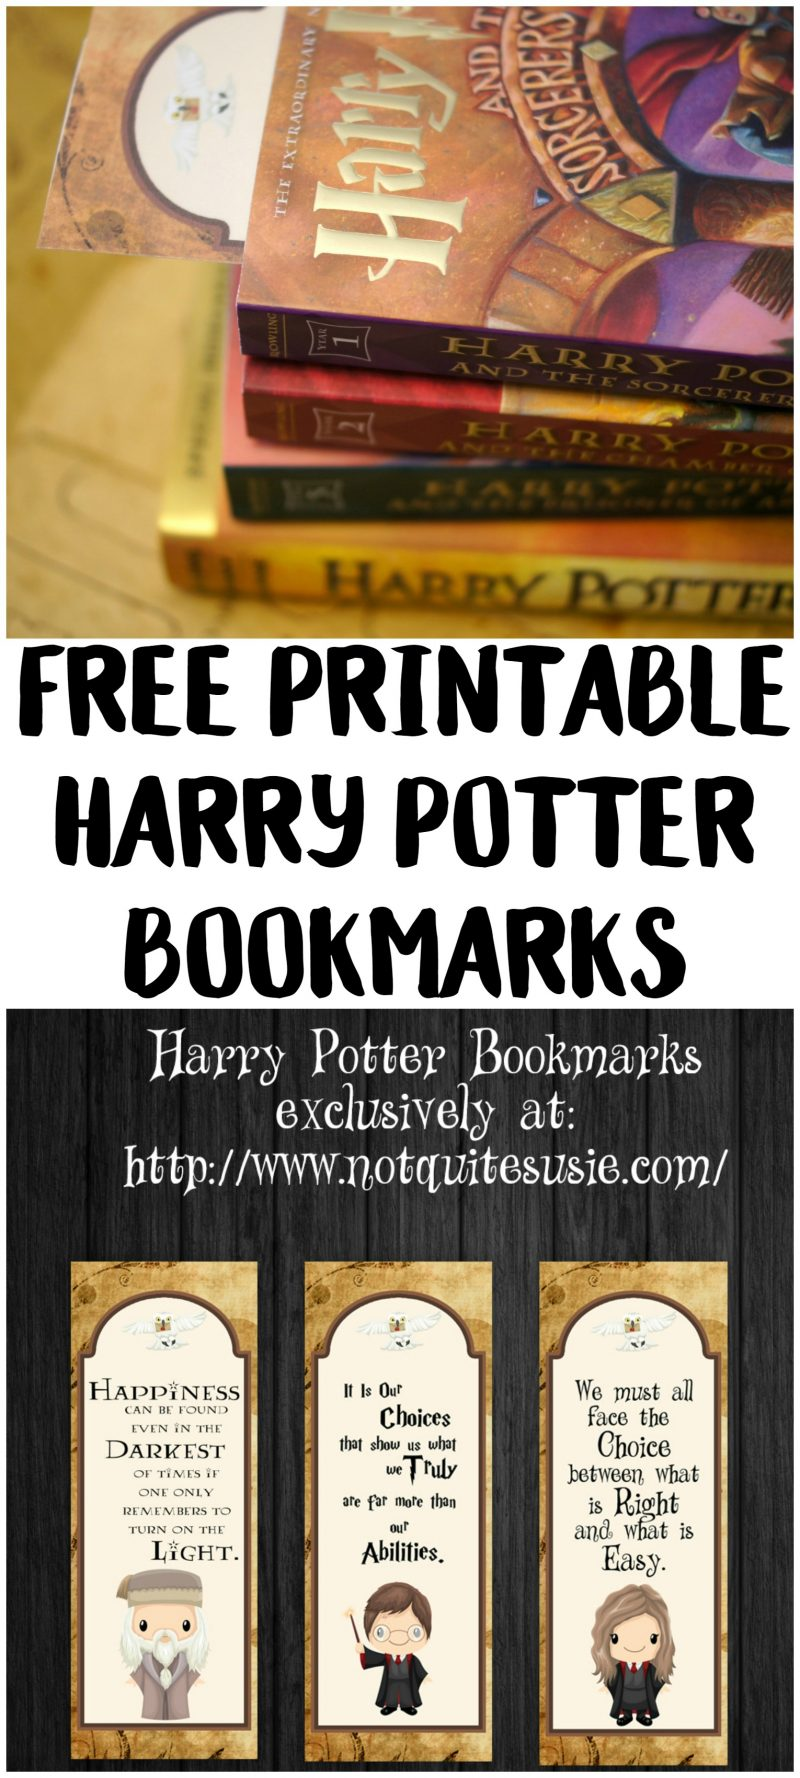 picture about Printable Harry Potter Bookmarks identified as No cost Printable Harry Potter Bookmarks - Not Really Susie